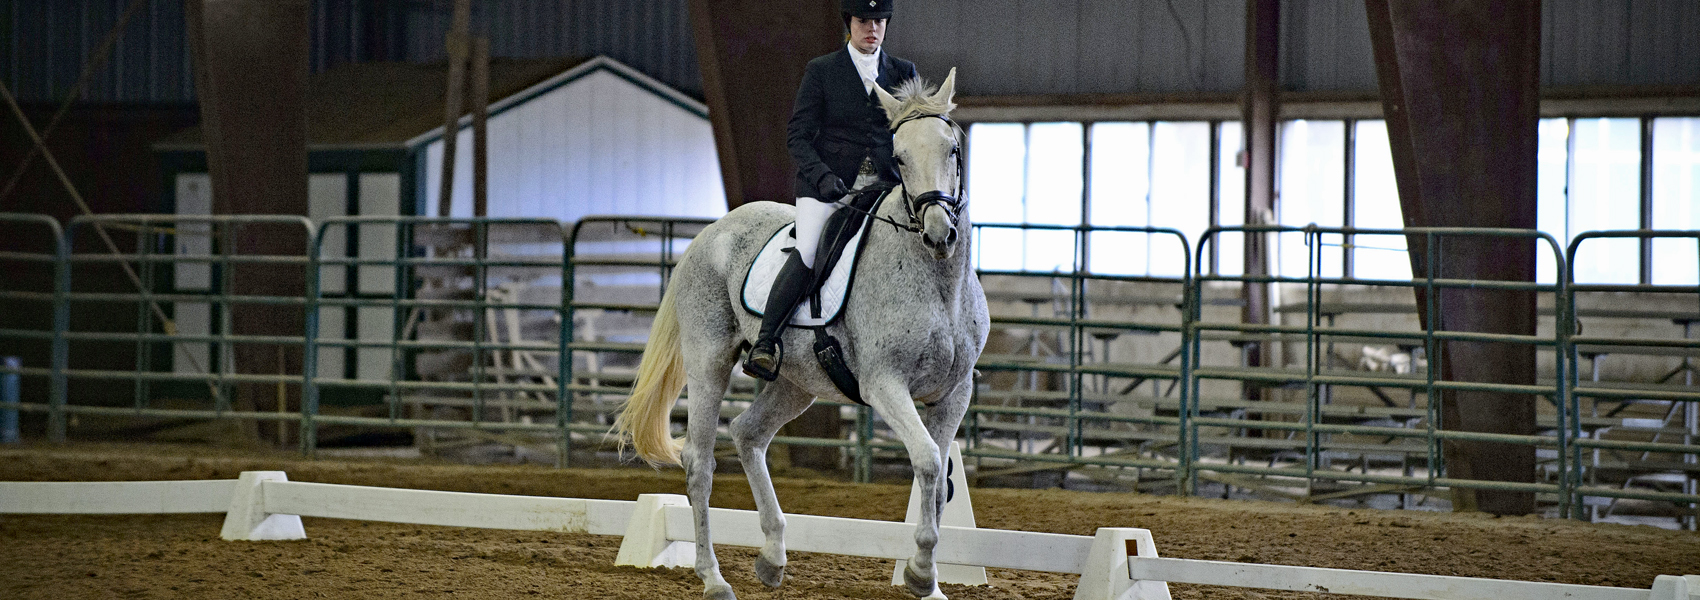 Horse in mid-step during dressage performance